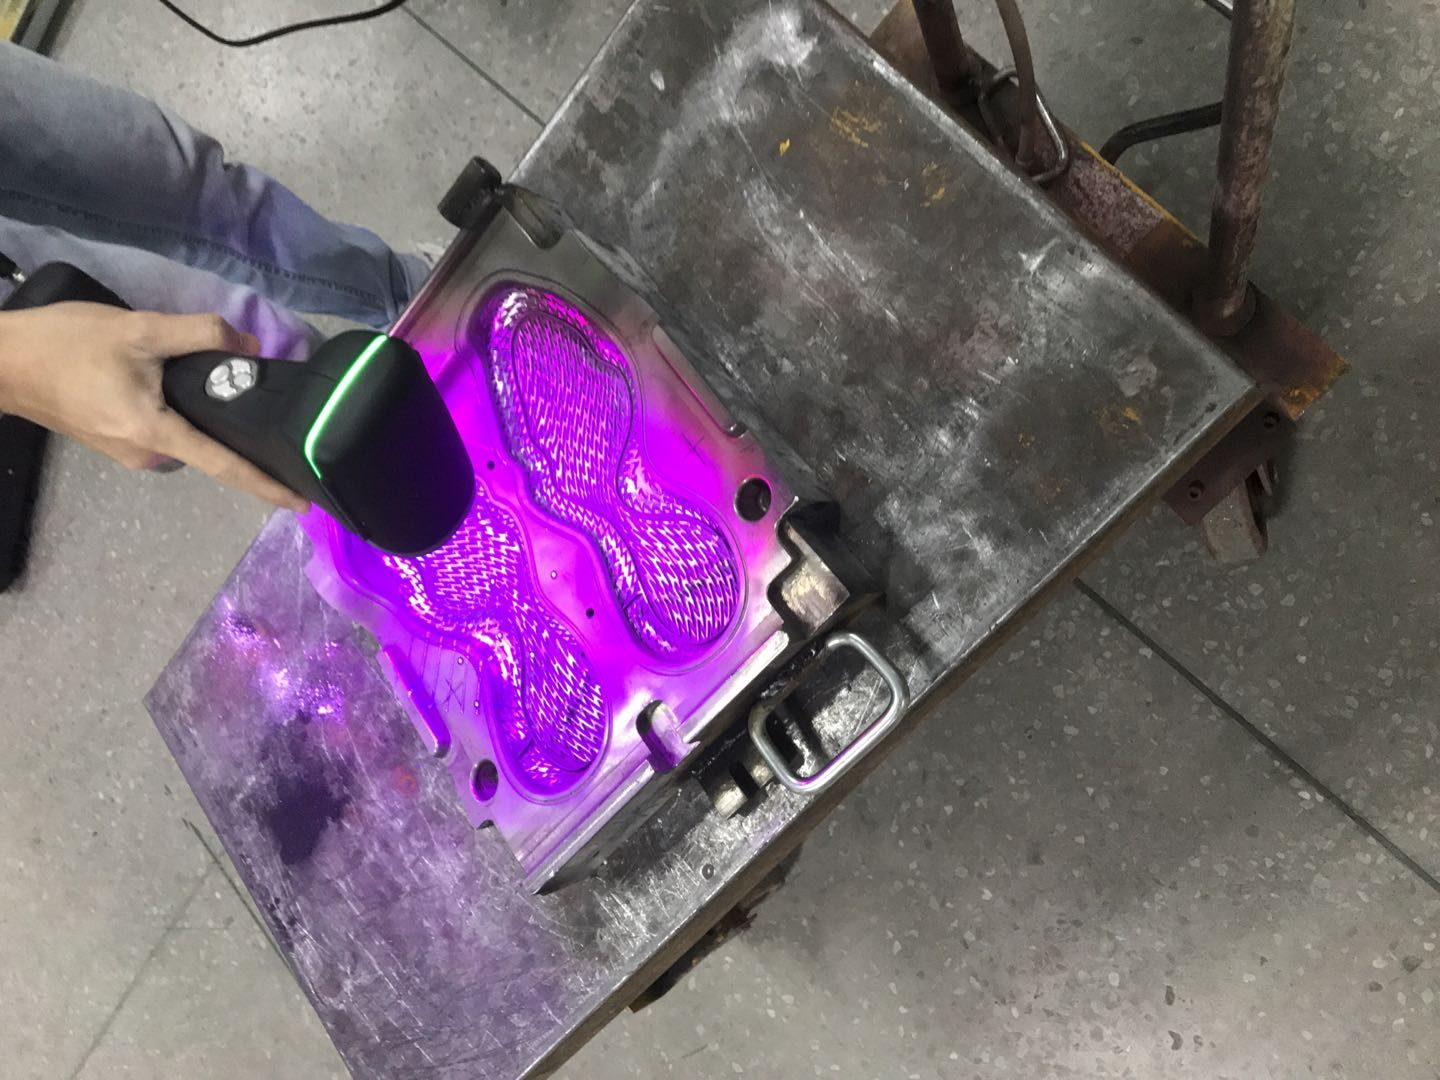 3D scanner in the shoe mold industry 2